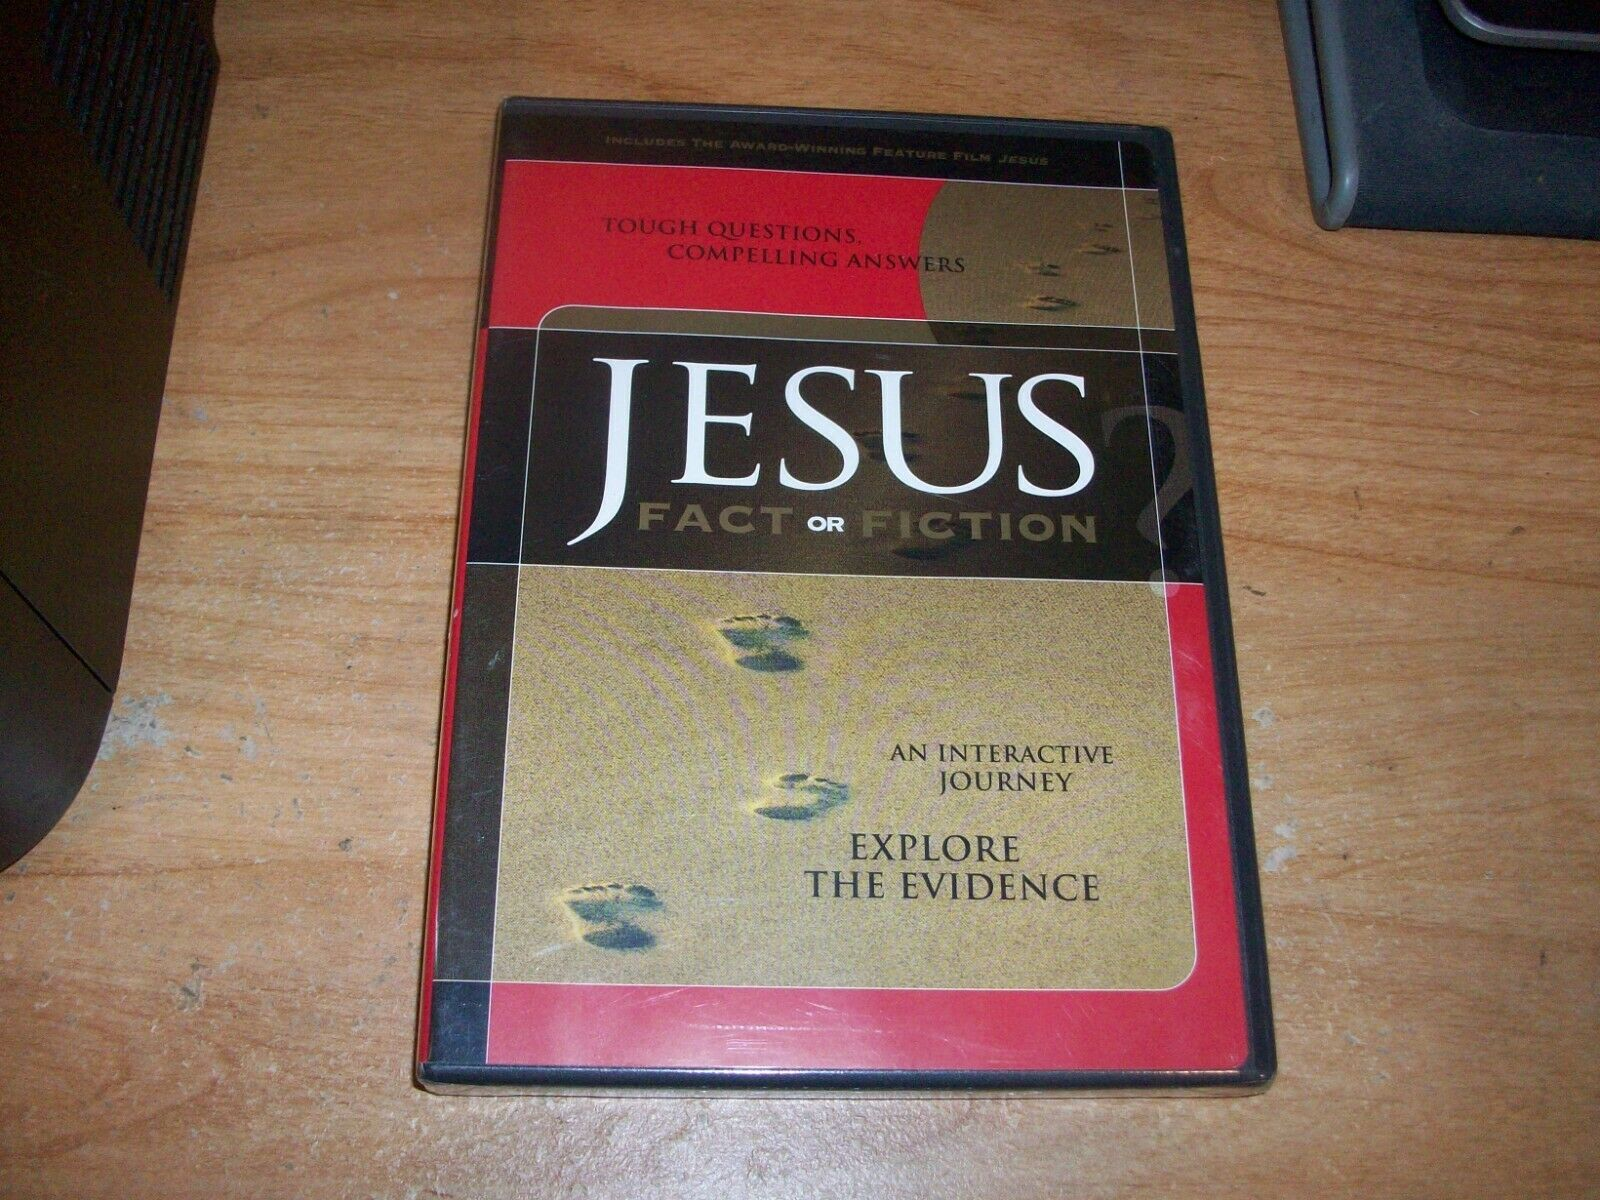 Jesus Fact Or Fiction DVD 2003 An Interactive Journey - $6.99